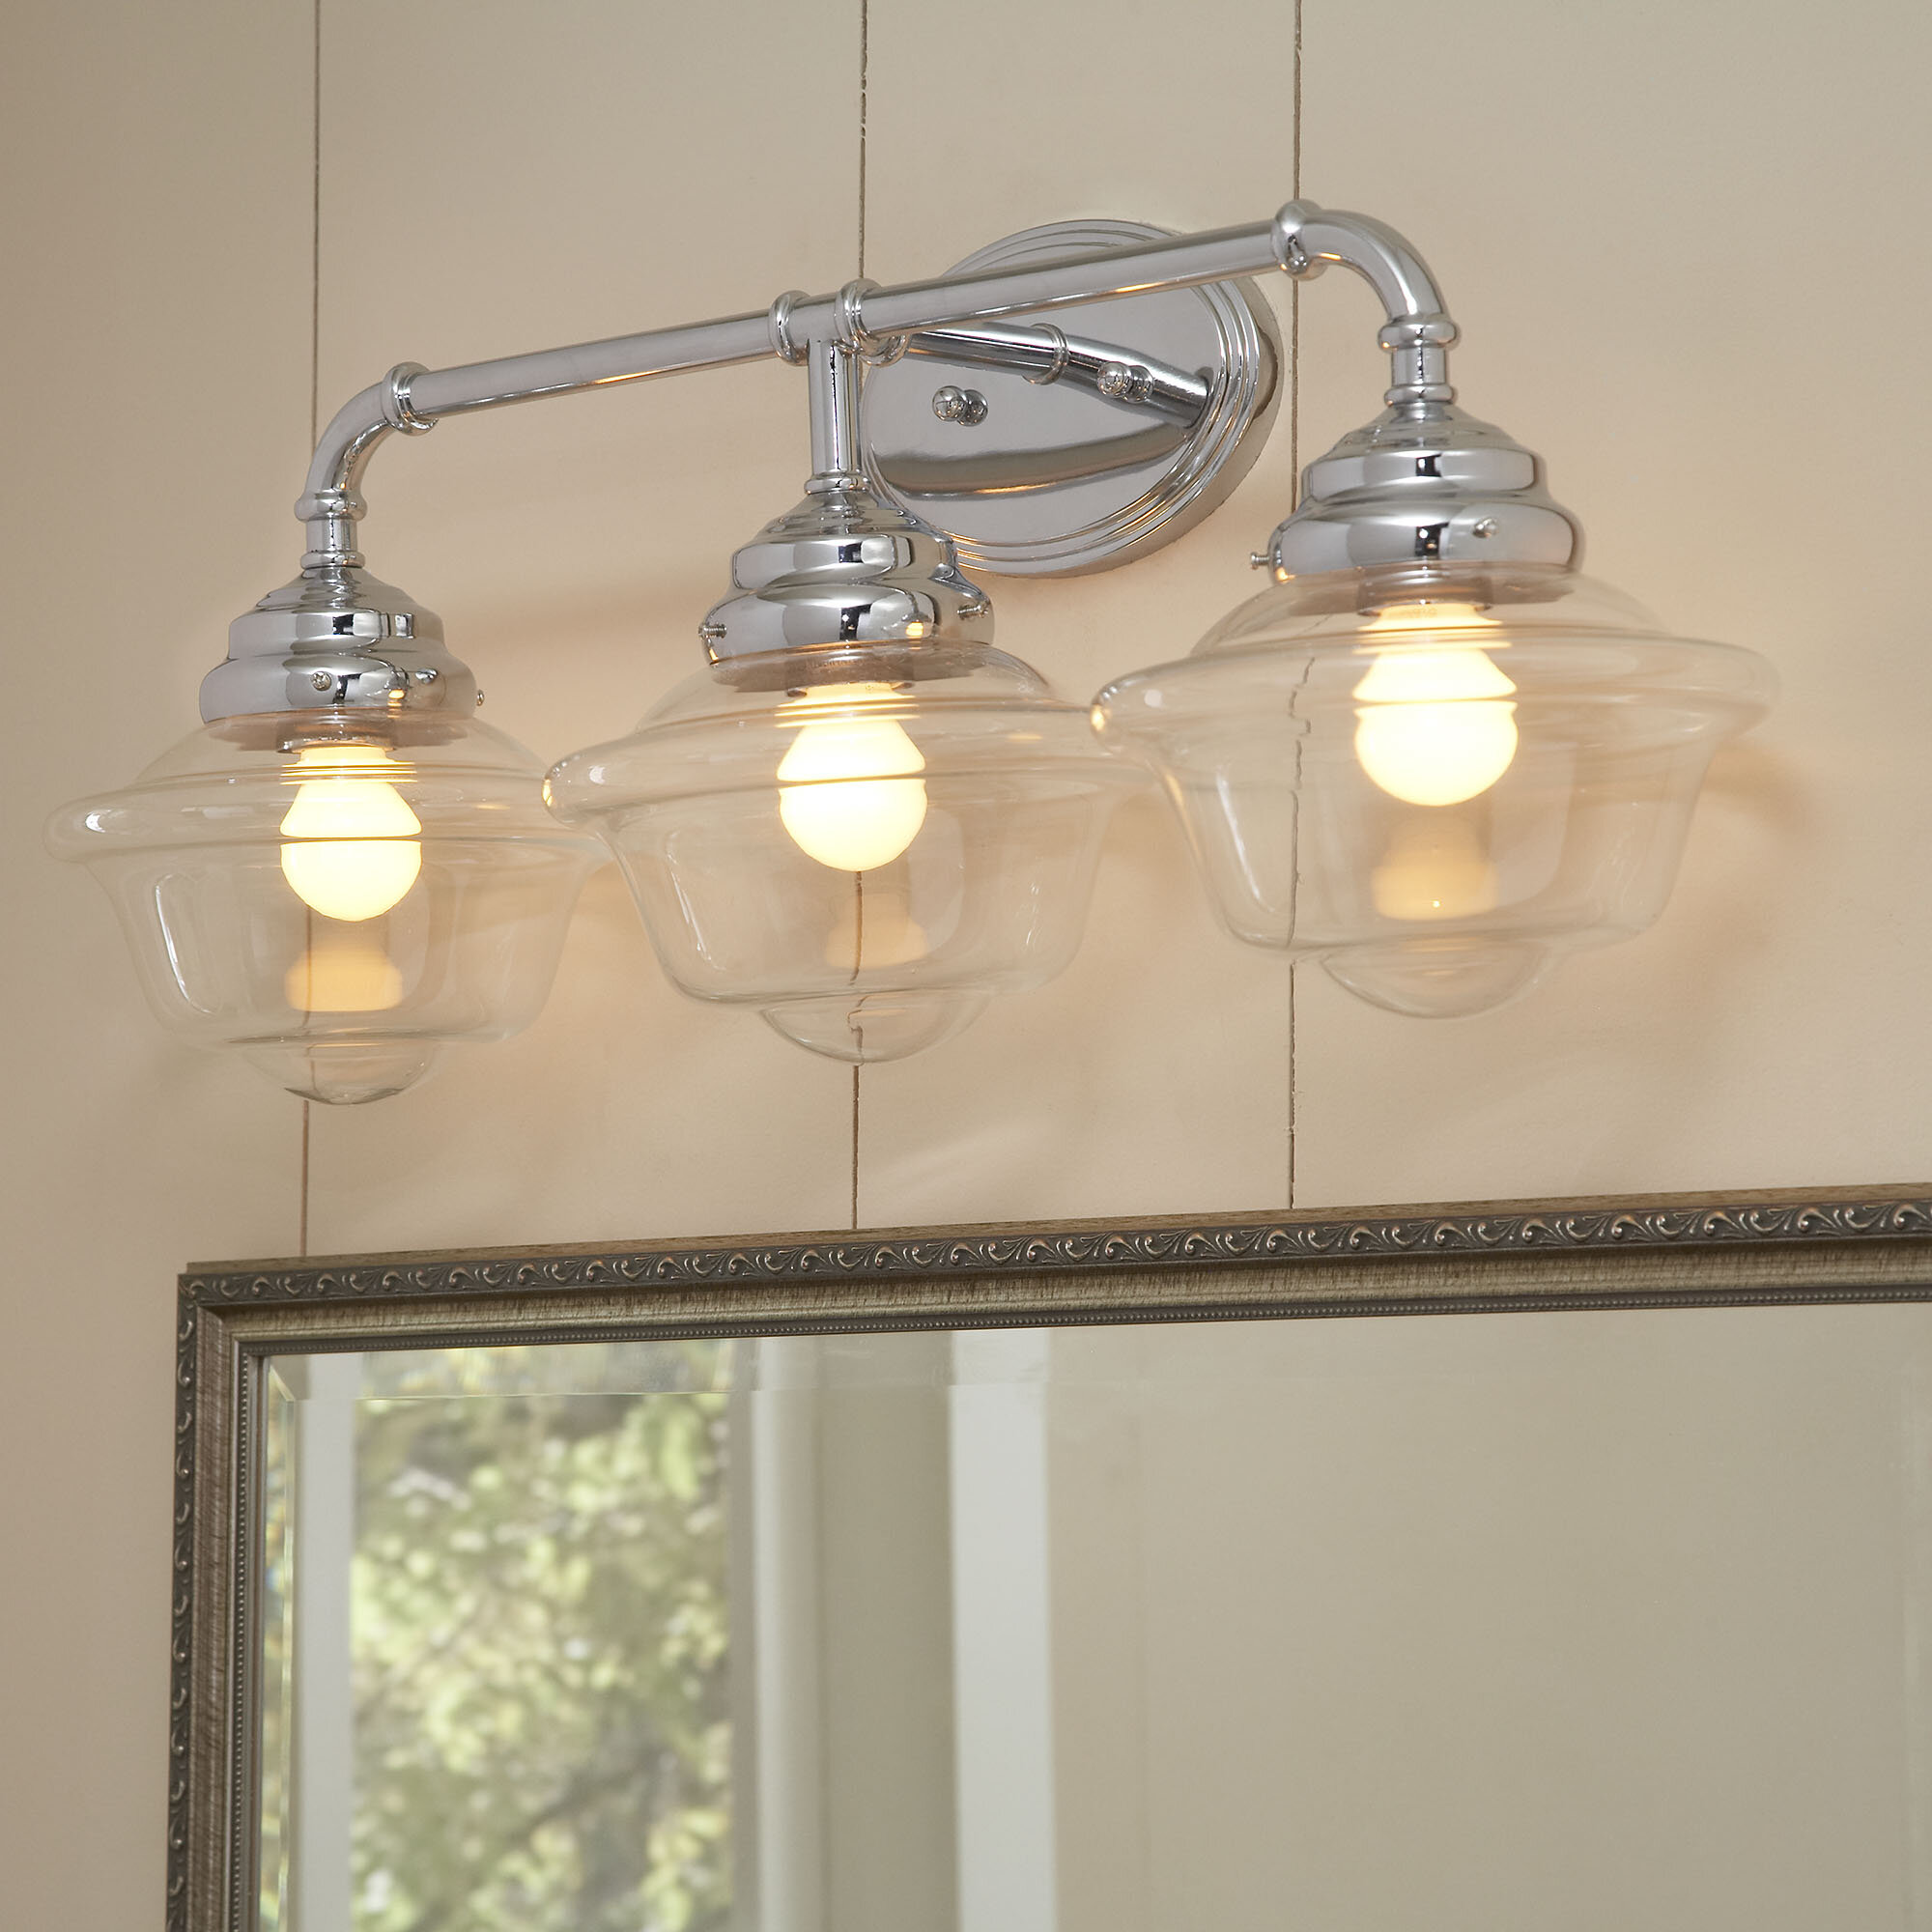 capital in glass shown wide bath inch nickel lighting cfm light item vanity finish polished white and studio soft